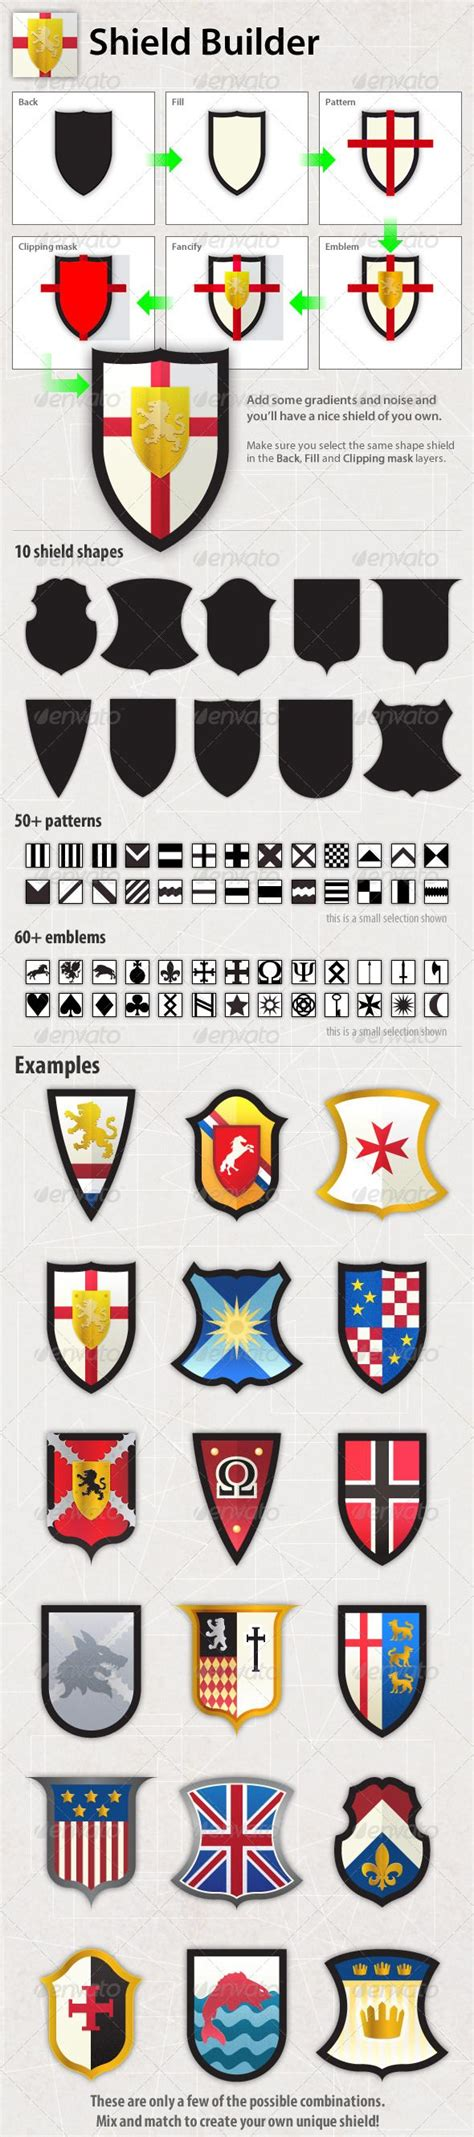 pattern and meaning in history dilthey 25 best ideas about coat of arms on pinterest family